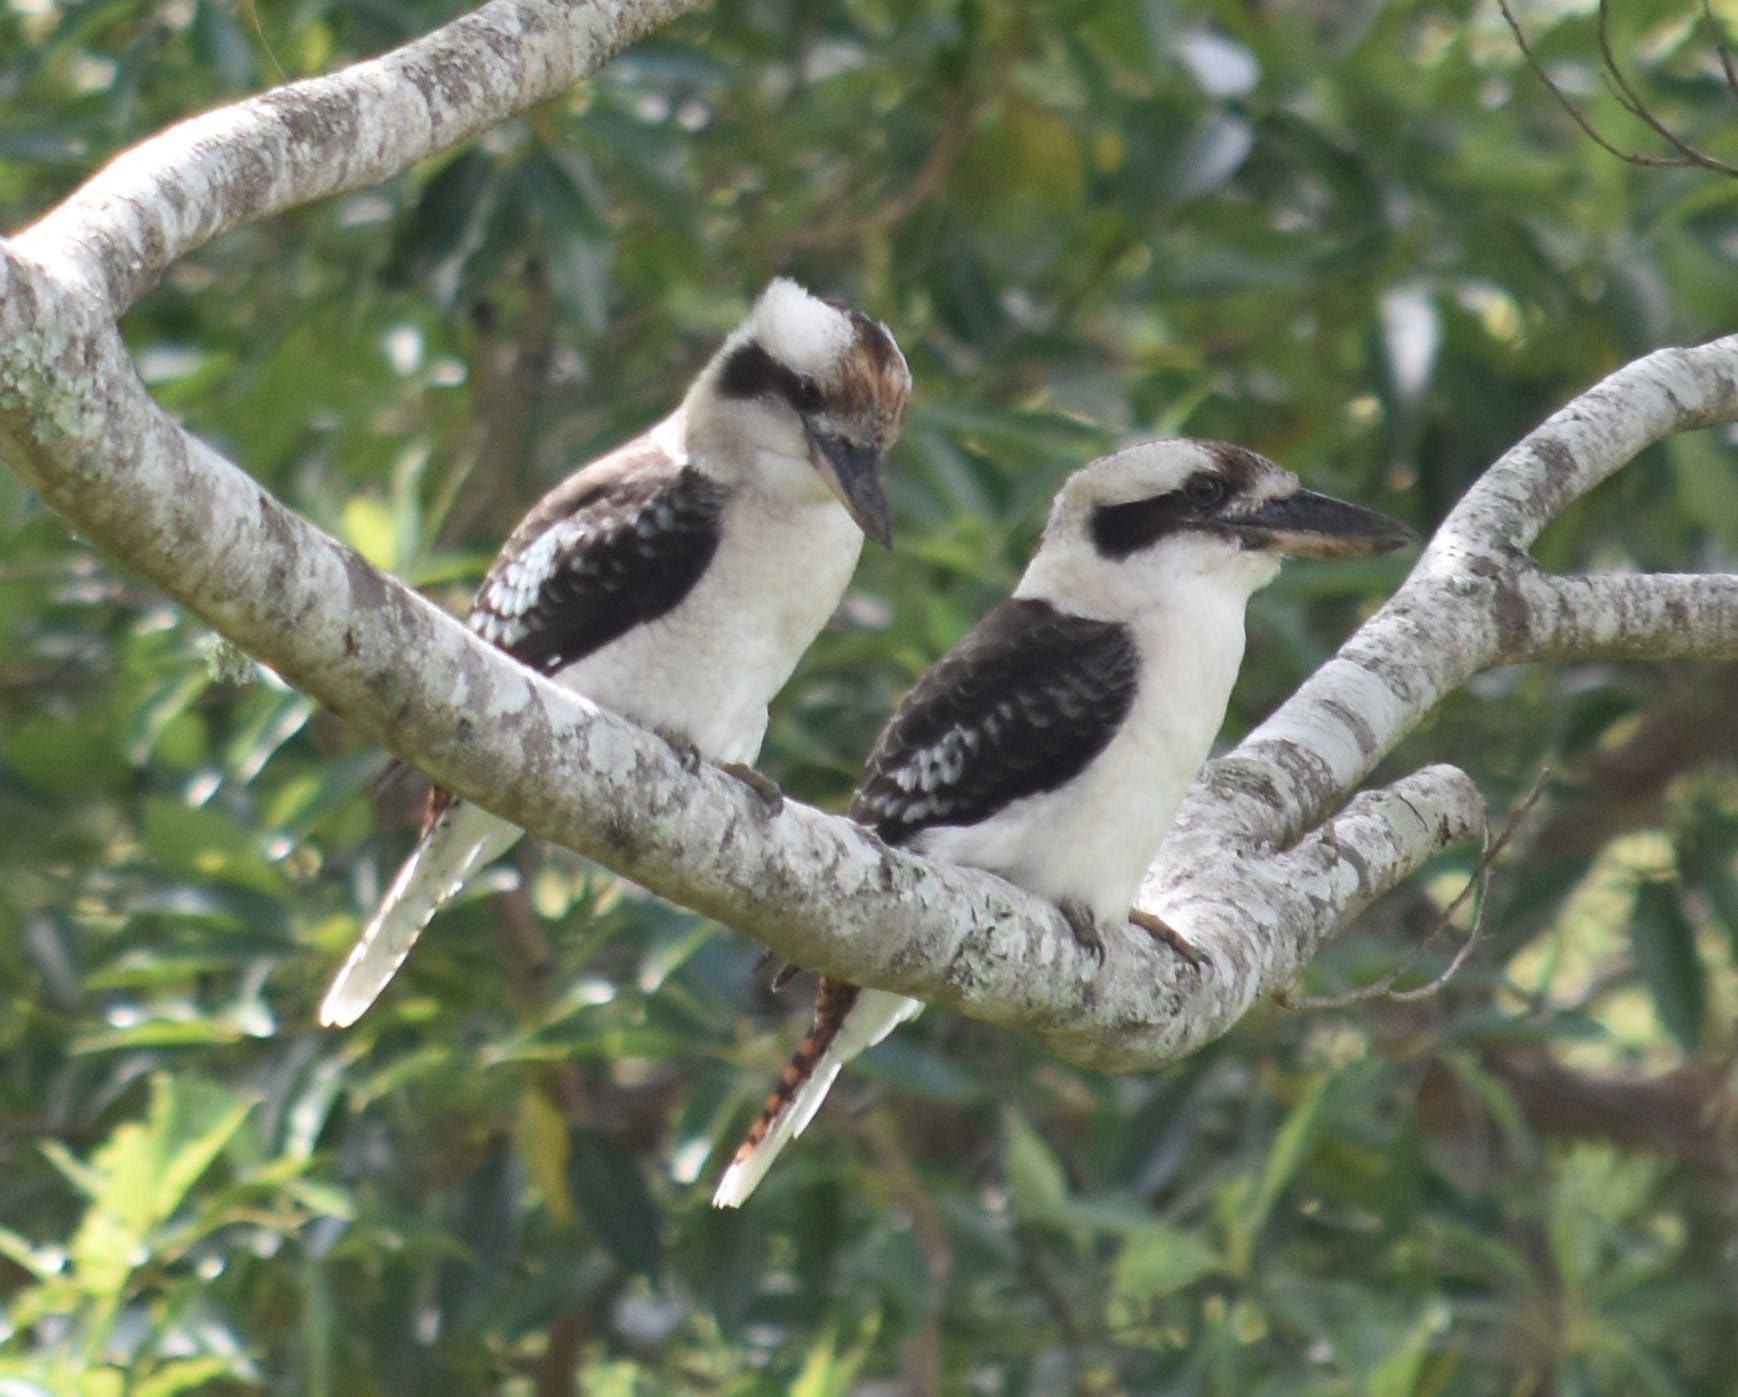 Kookaburras on property, Bird watchers, 'Twitchers' paradise.